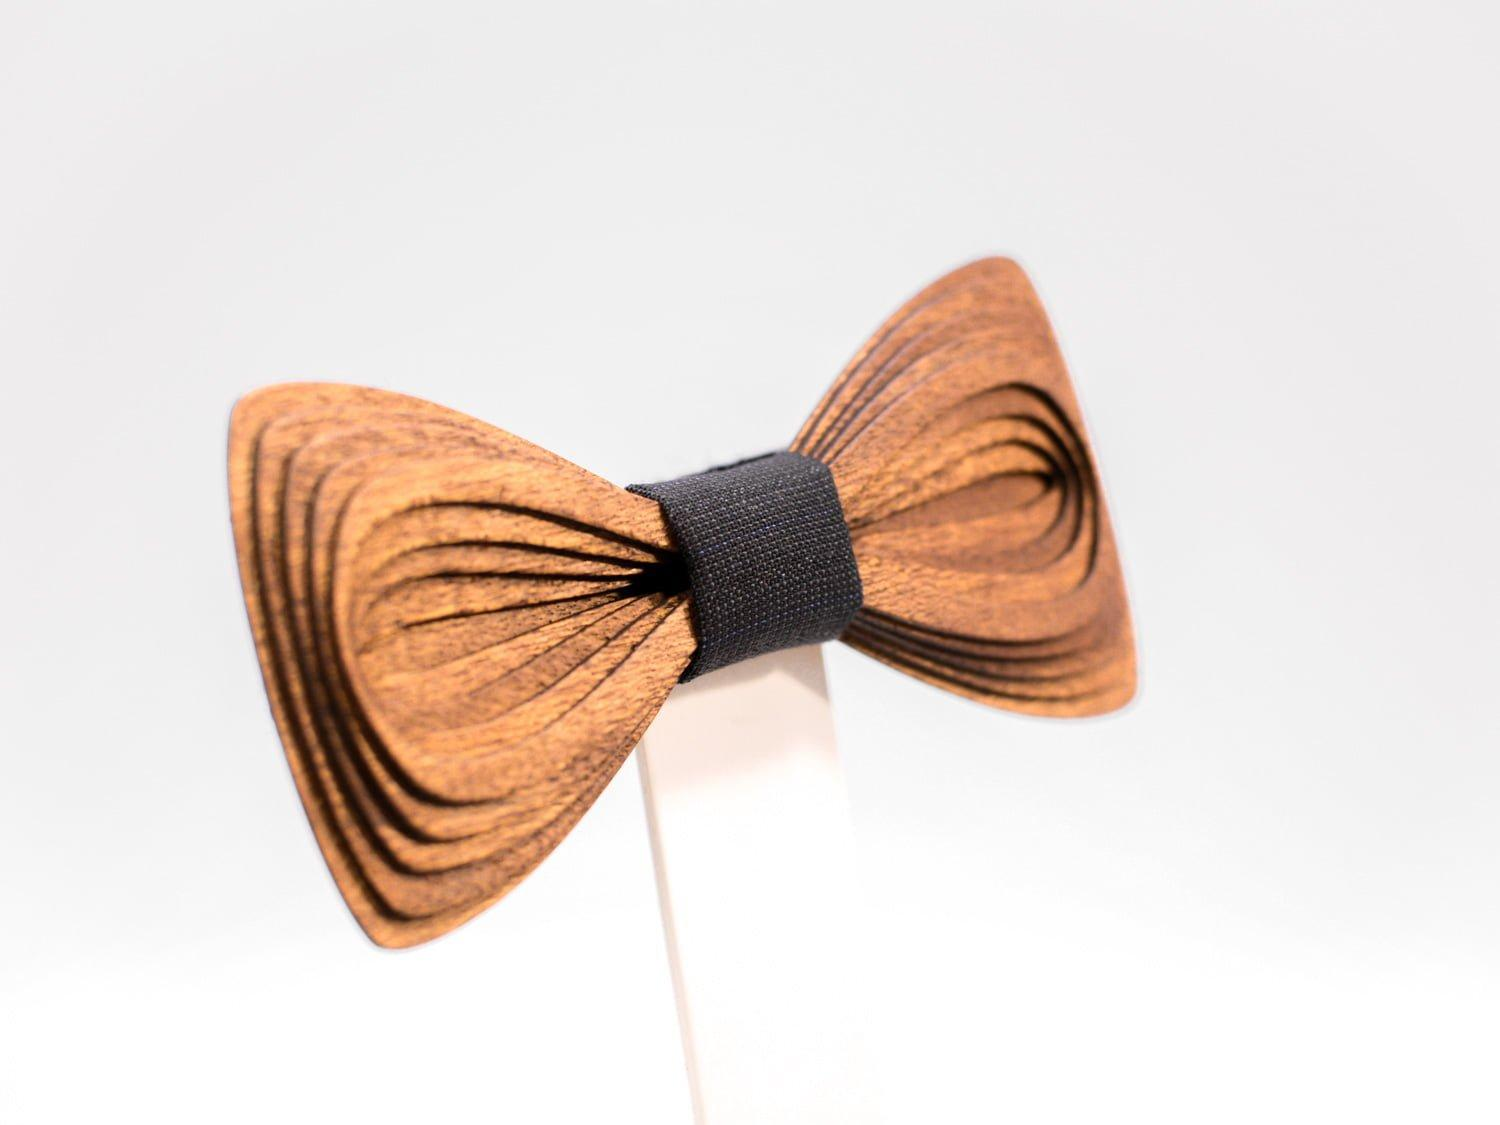 SÖÖR Antero neckwear in mahogany wood from FSC certified forest. A  wooden bowtie by Hermandia.